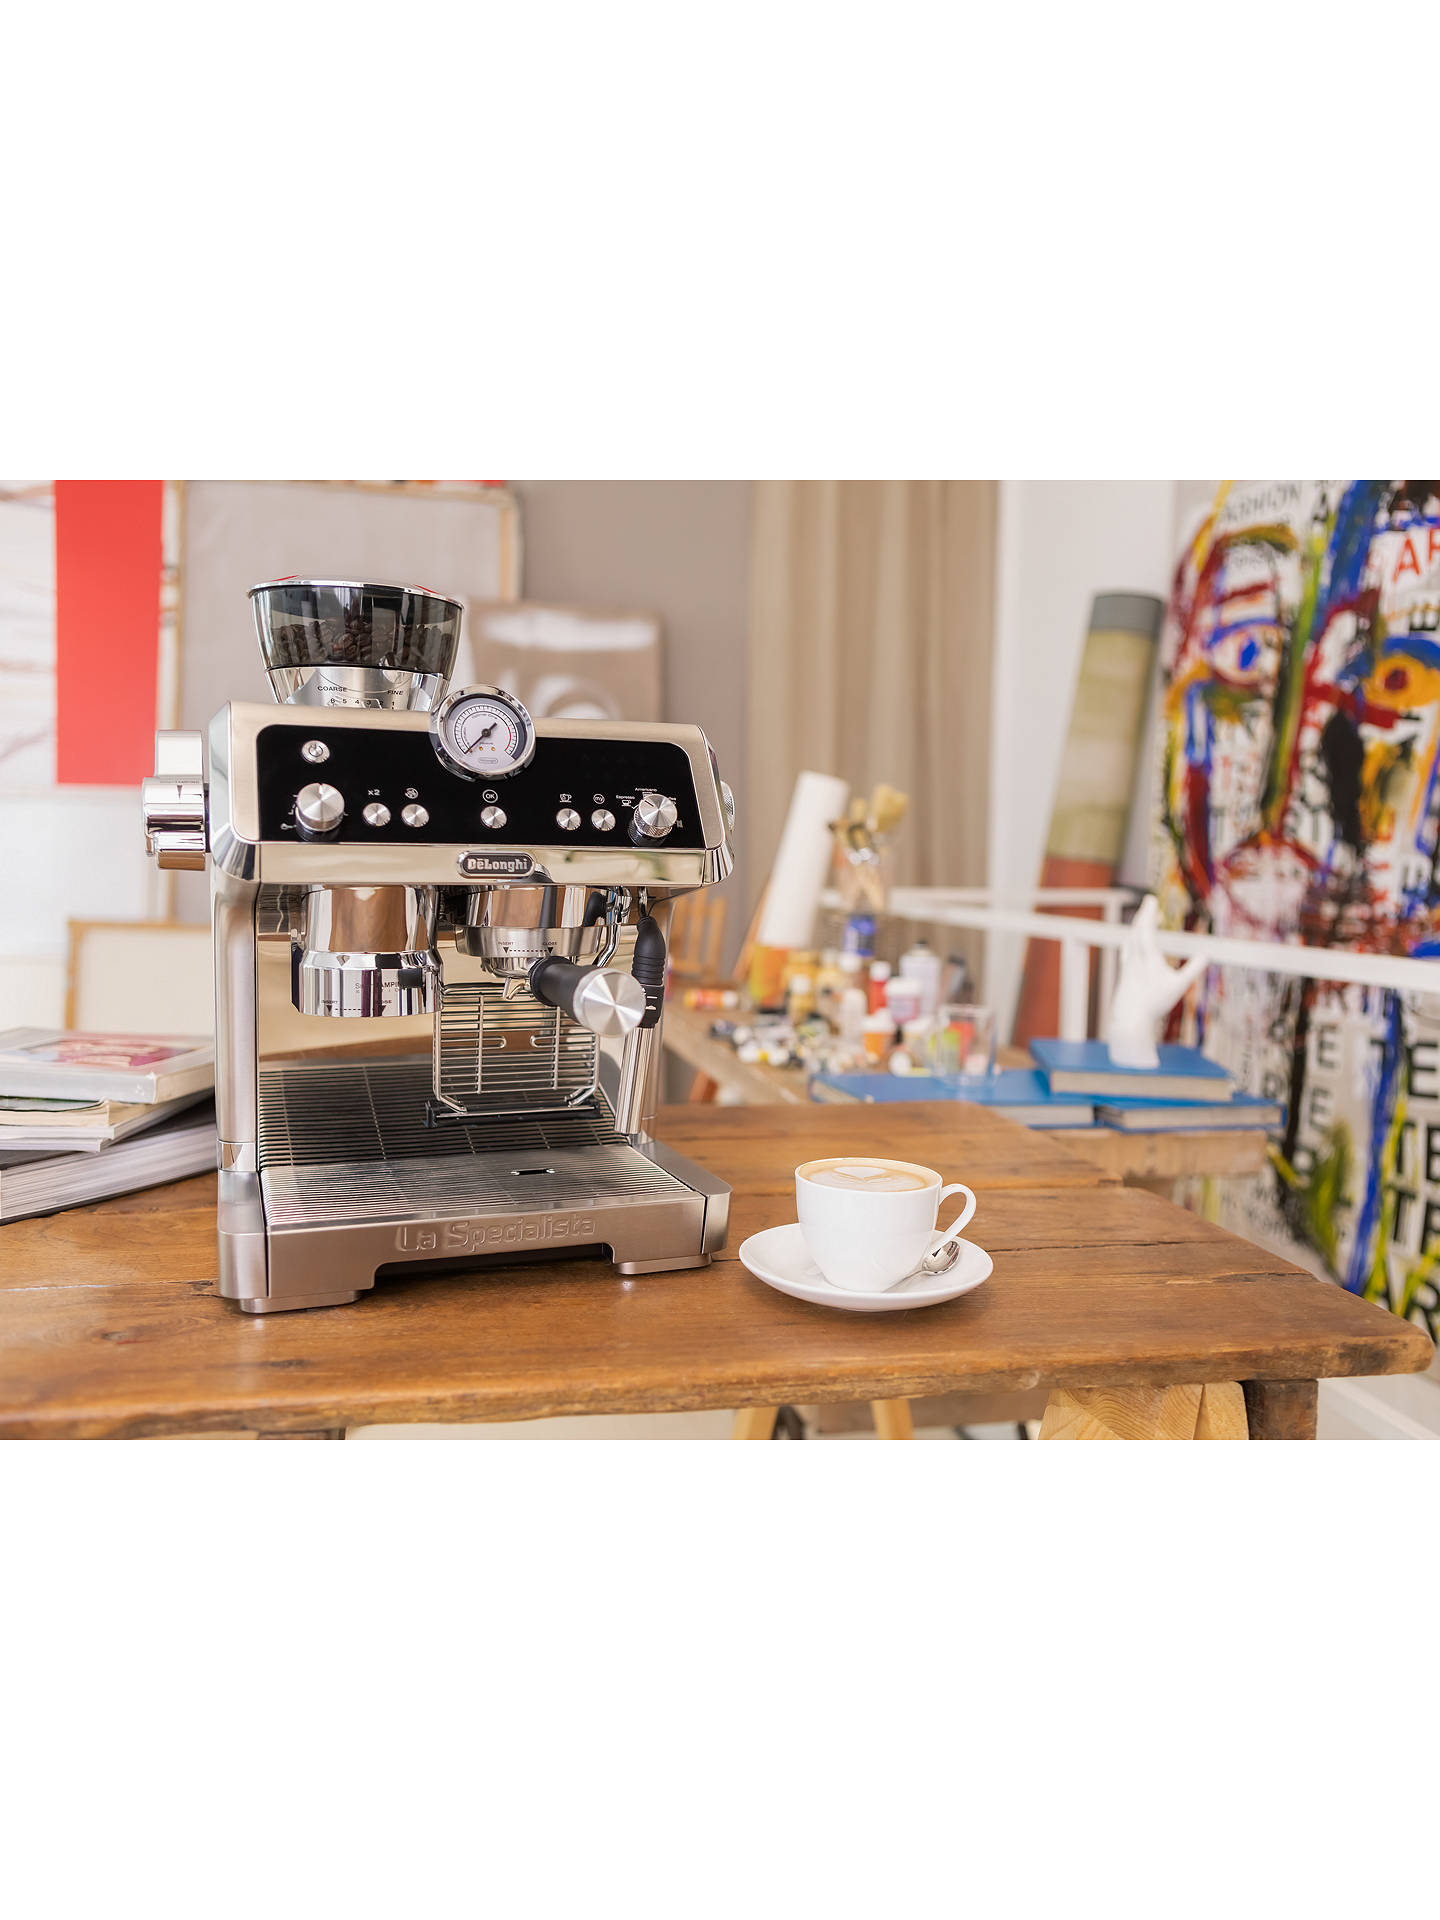 Buy De'Longhi EC9335.M La Specialista Bean to Cup Coffee Machine, Silver Online at johnlewis.com